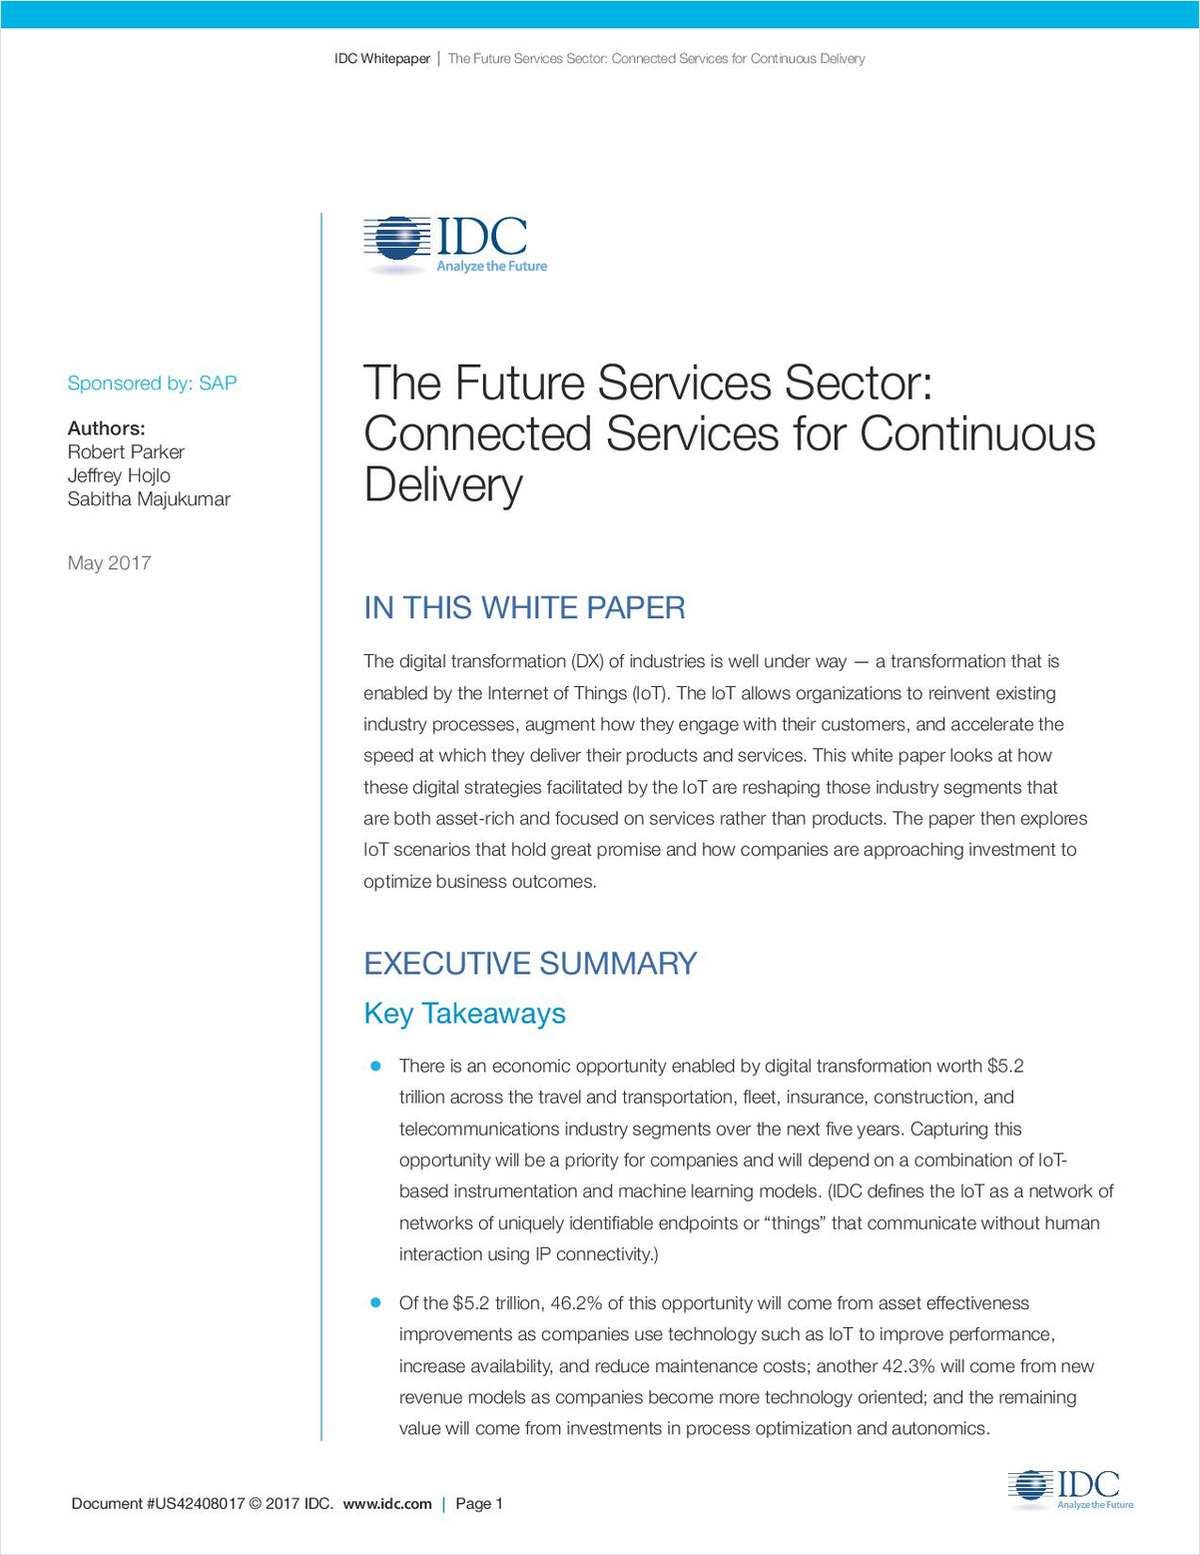 The Future Services Sector: Connected Services for Continuous Delivery